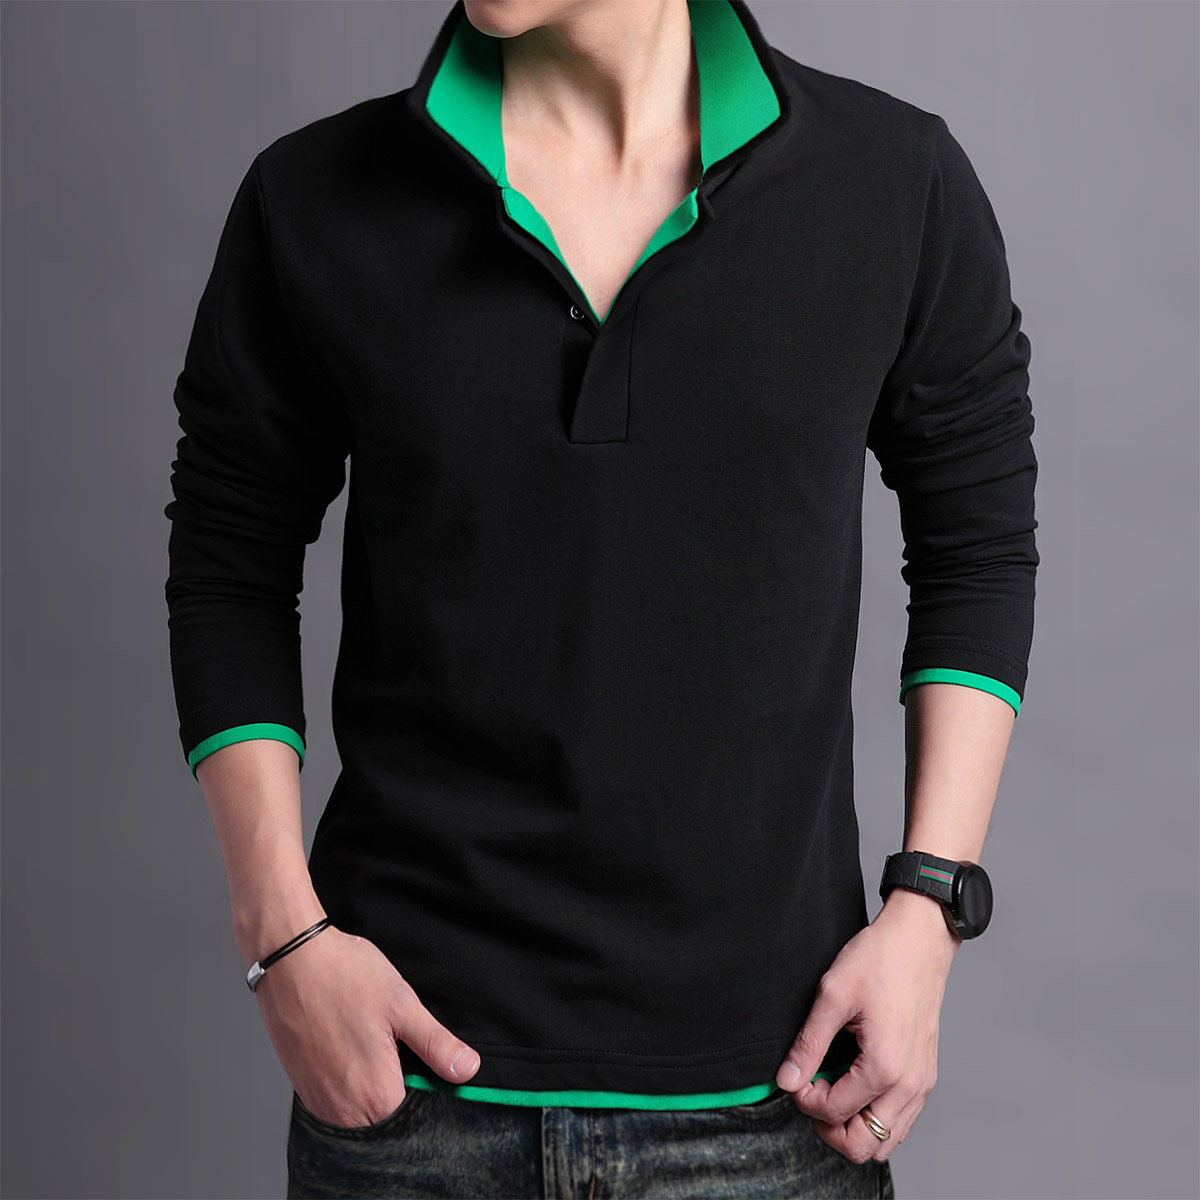 69d87b5816e Full Sleeve T Shirts For Men With Collar